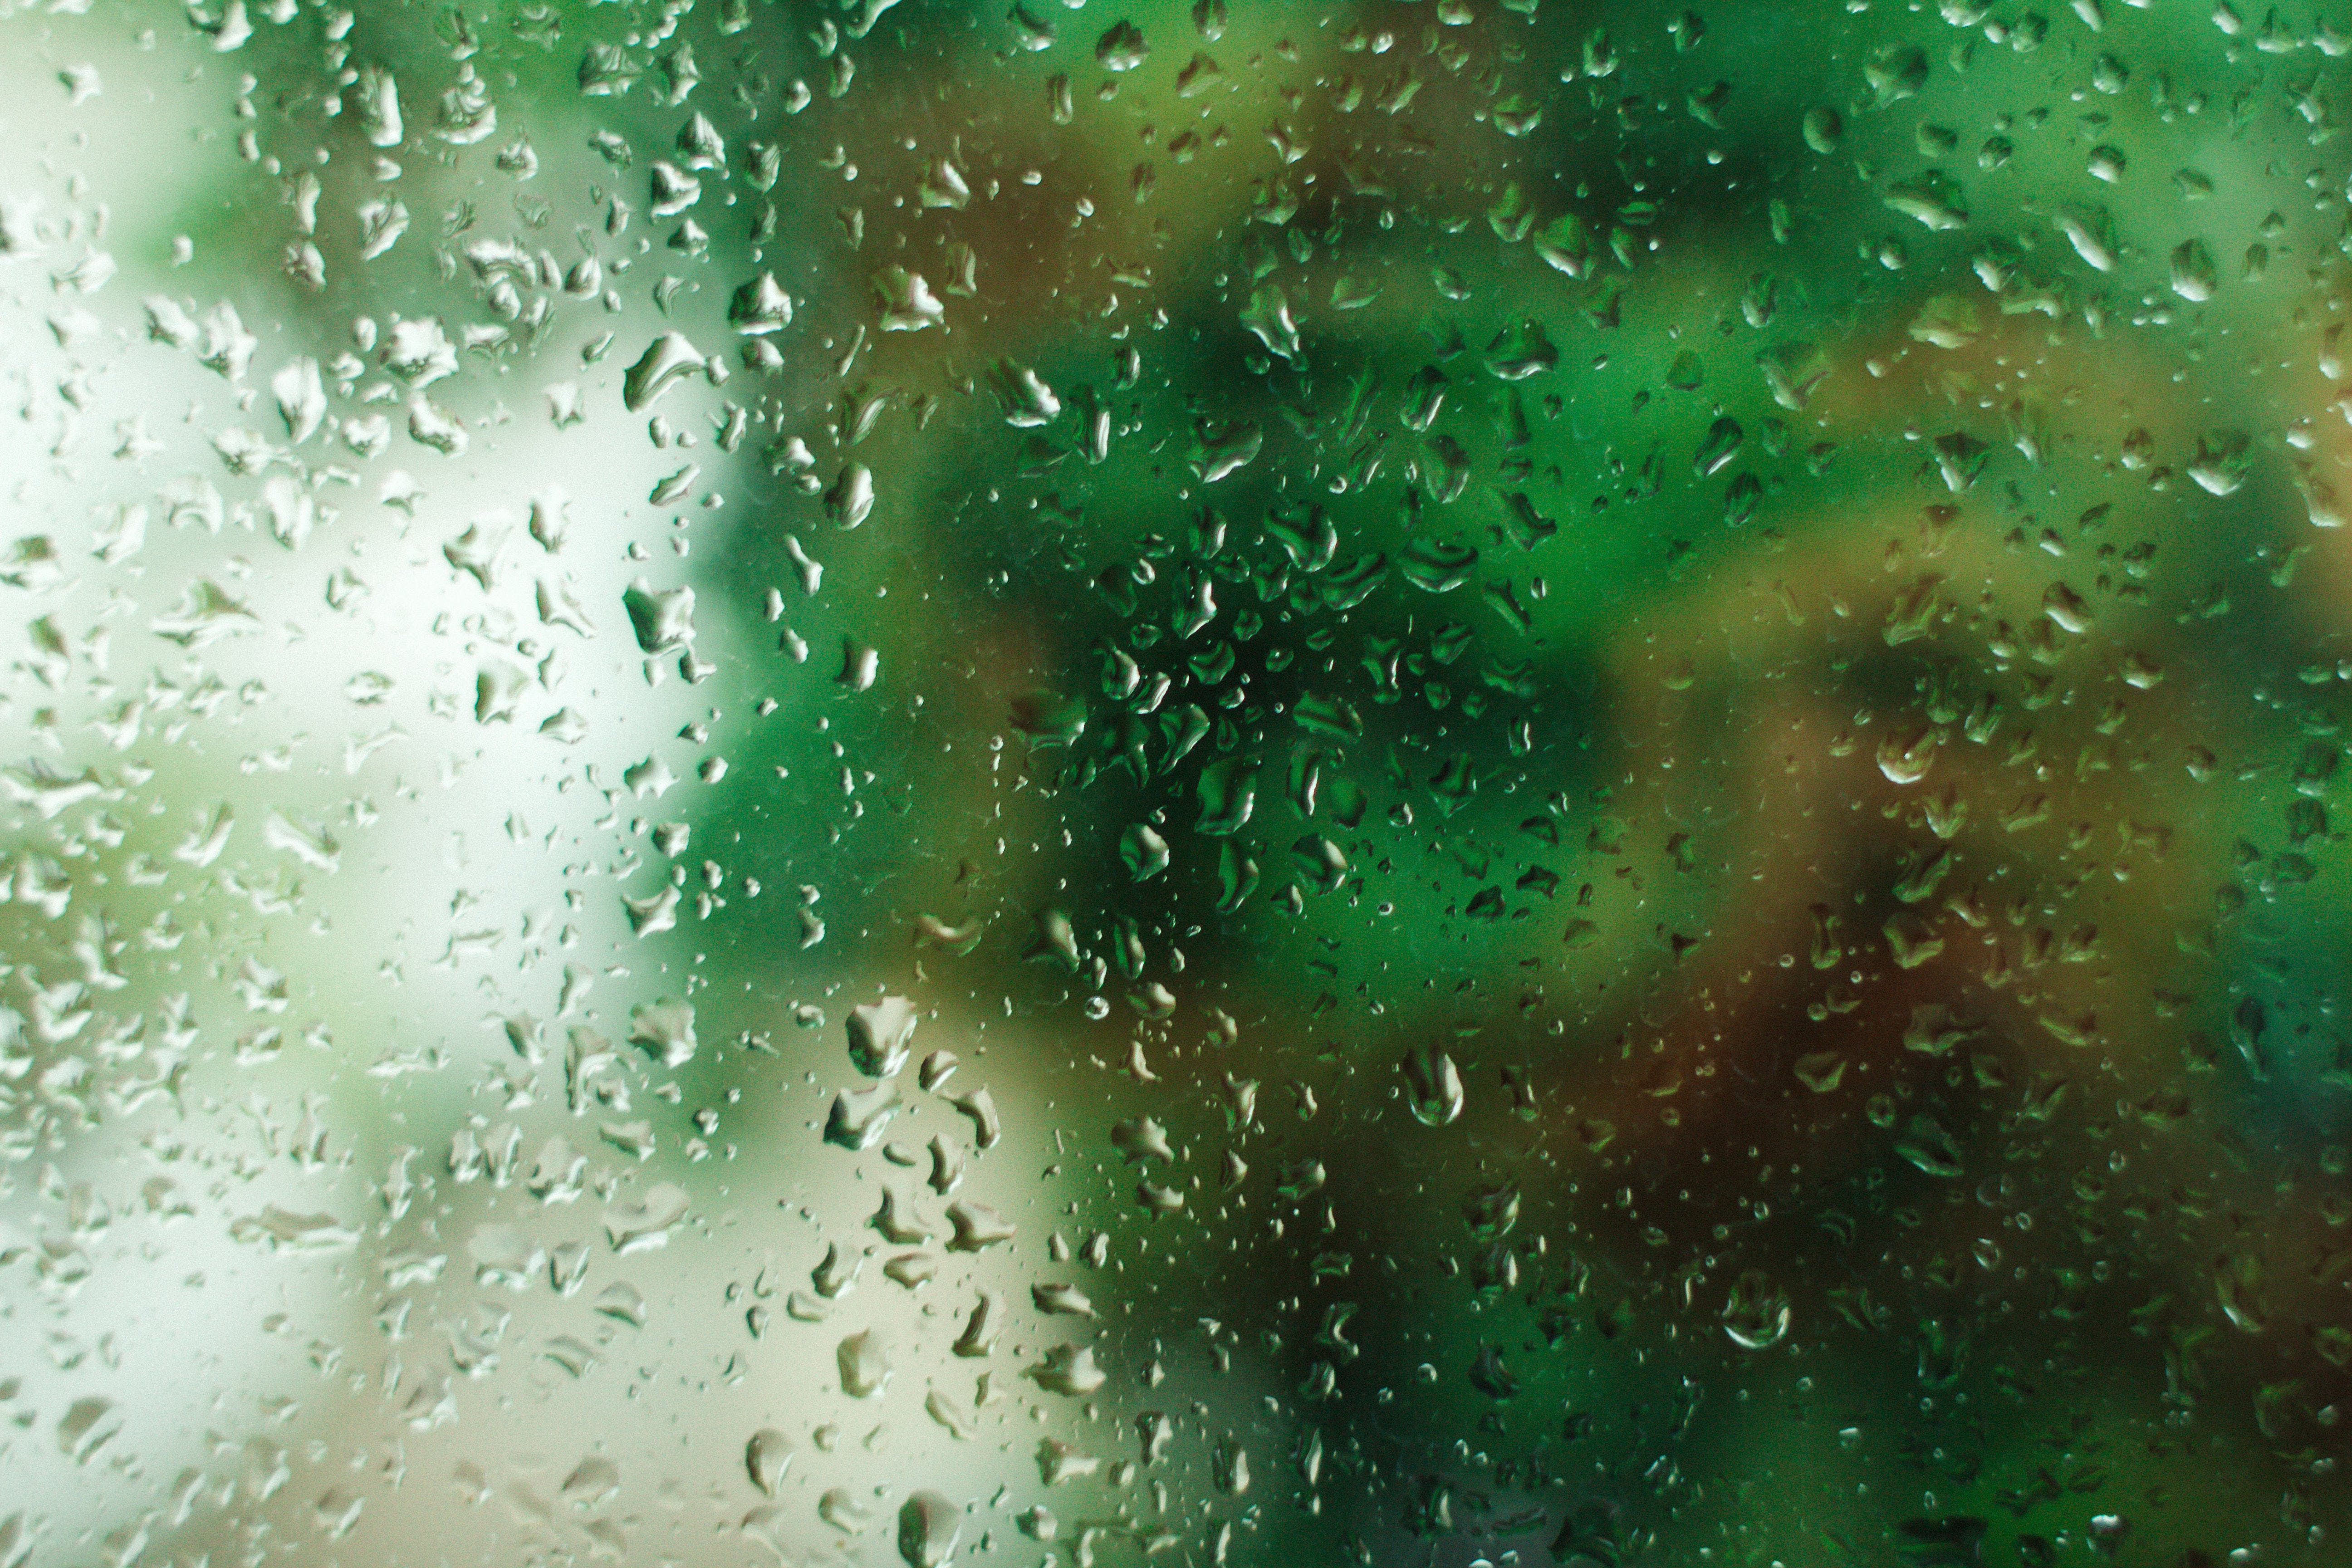 Close-Up Photography of Droplets on Glass